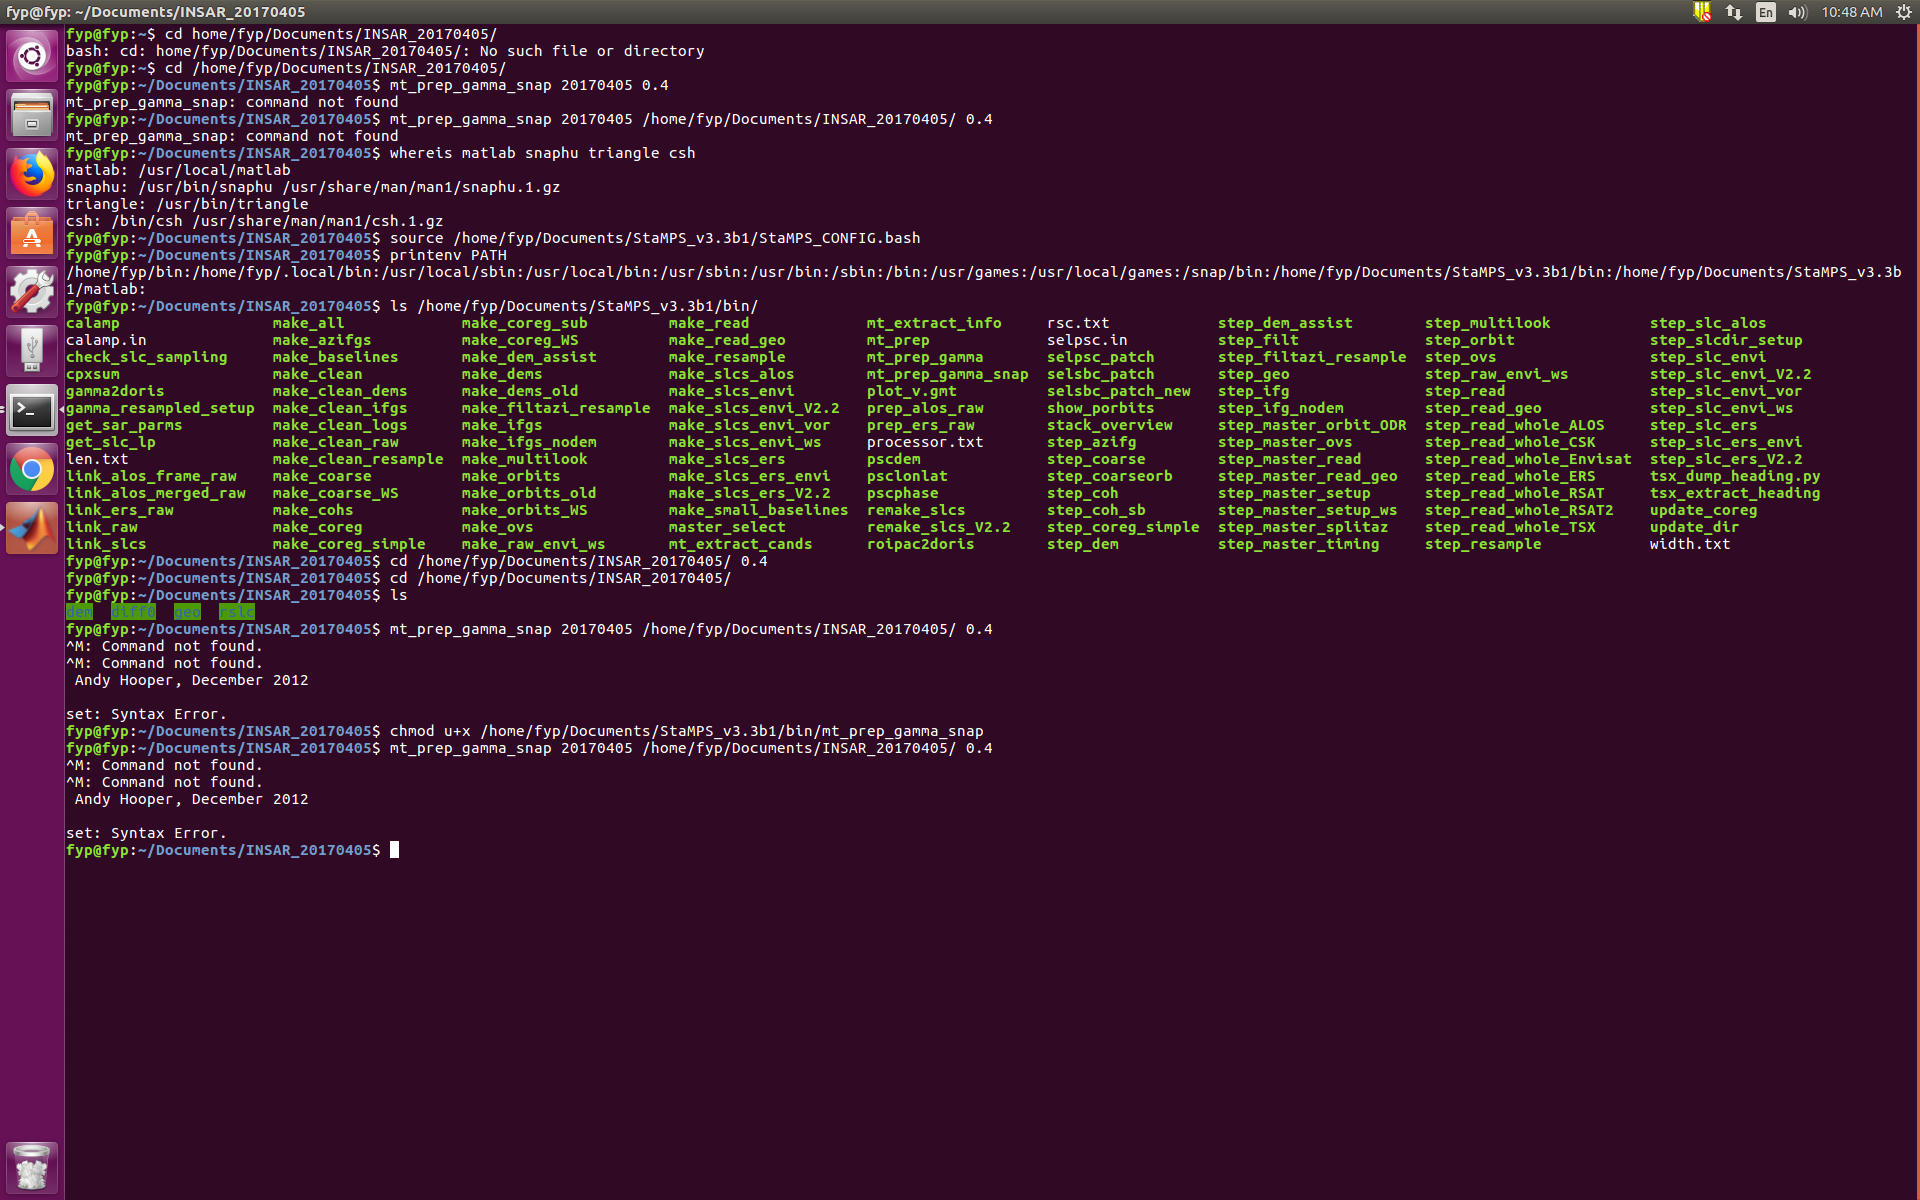 Linux Installation using StaMPS and S-1 data - STaMPS - STEP Forum